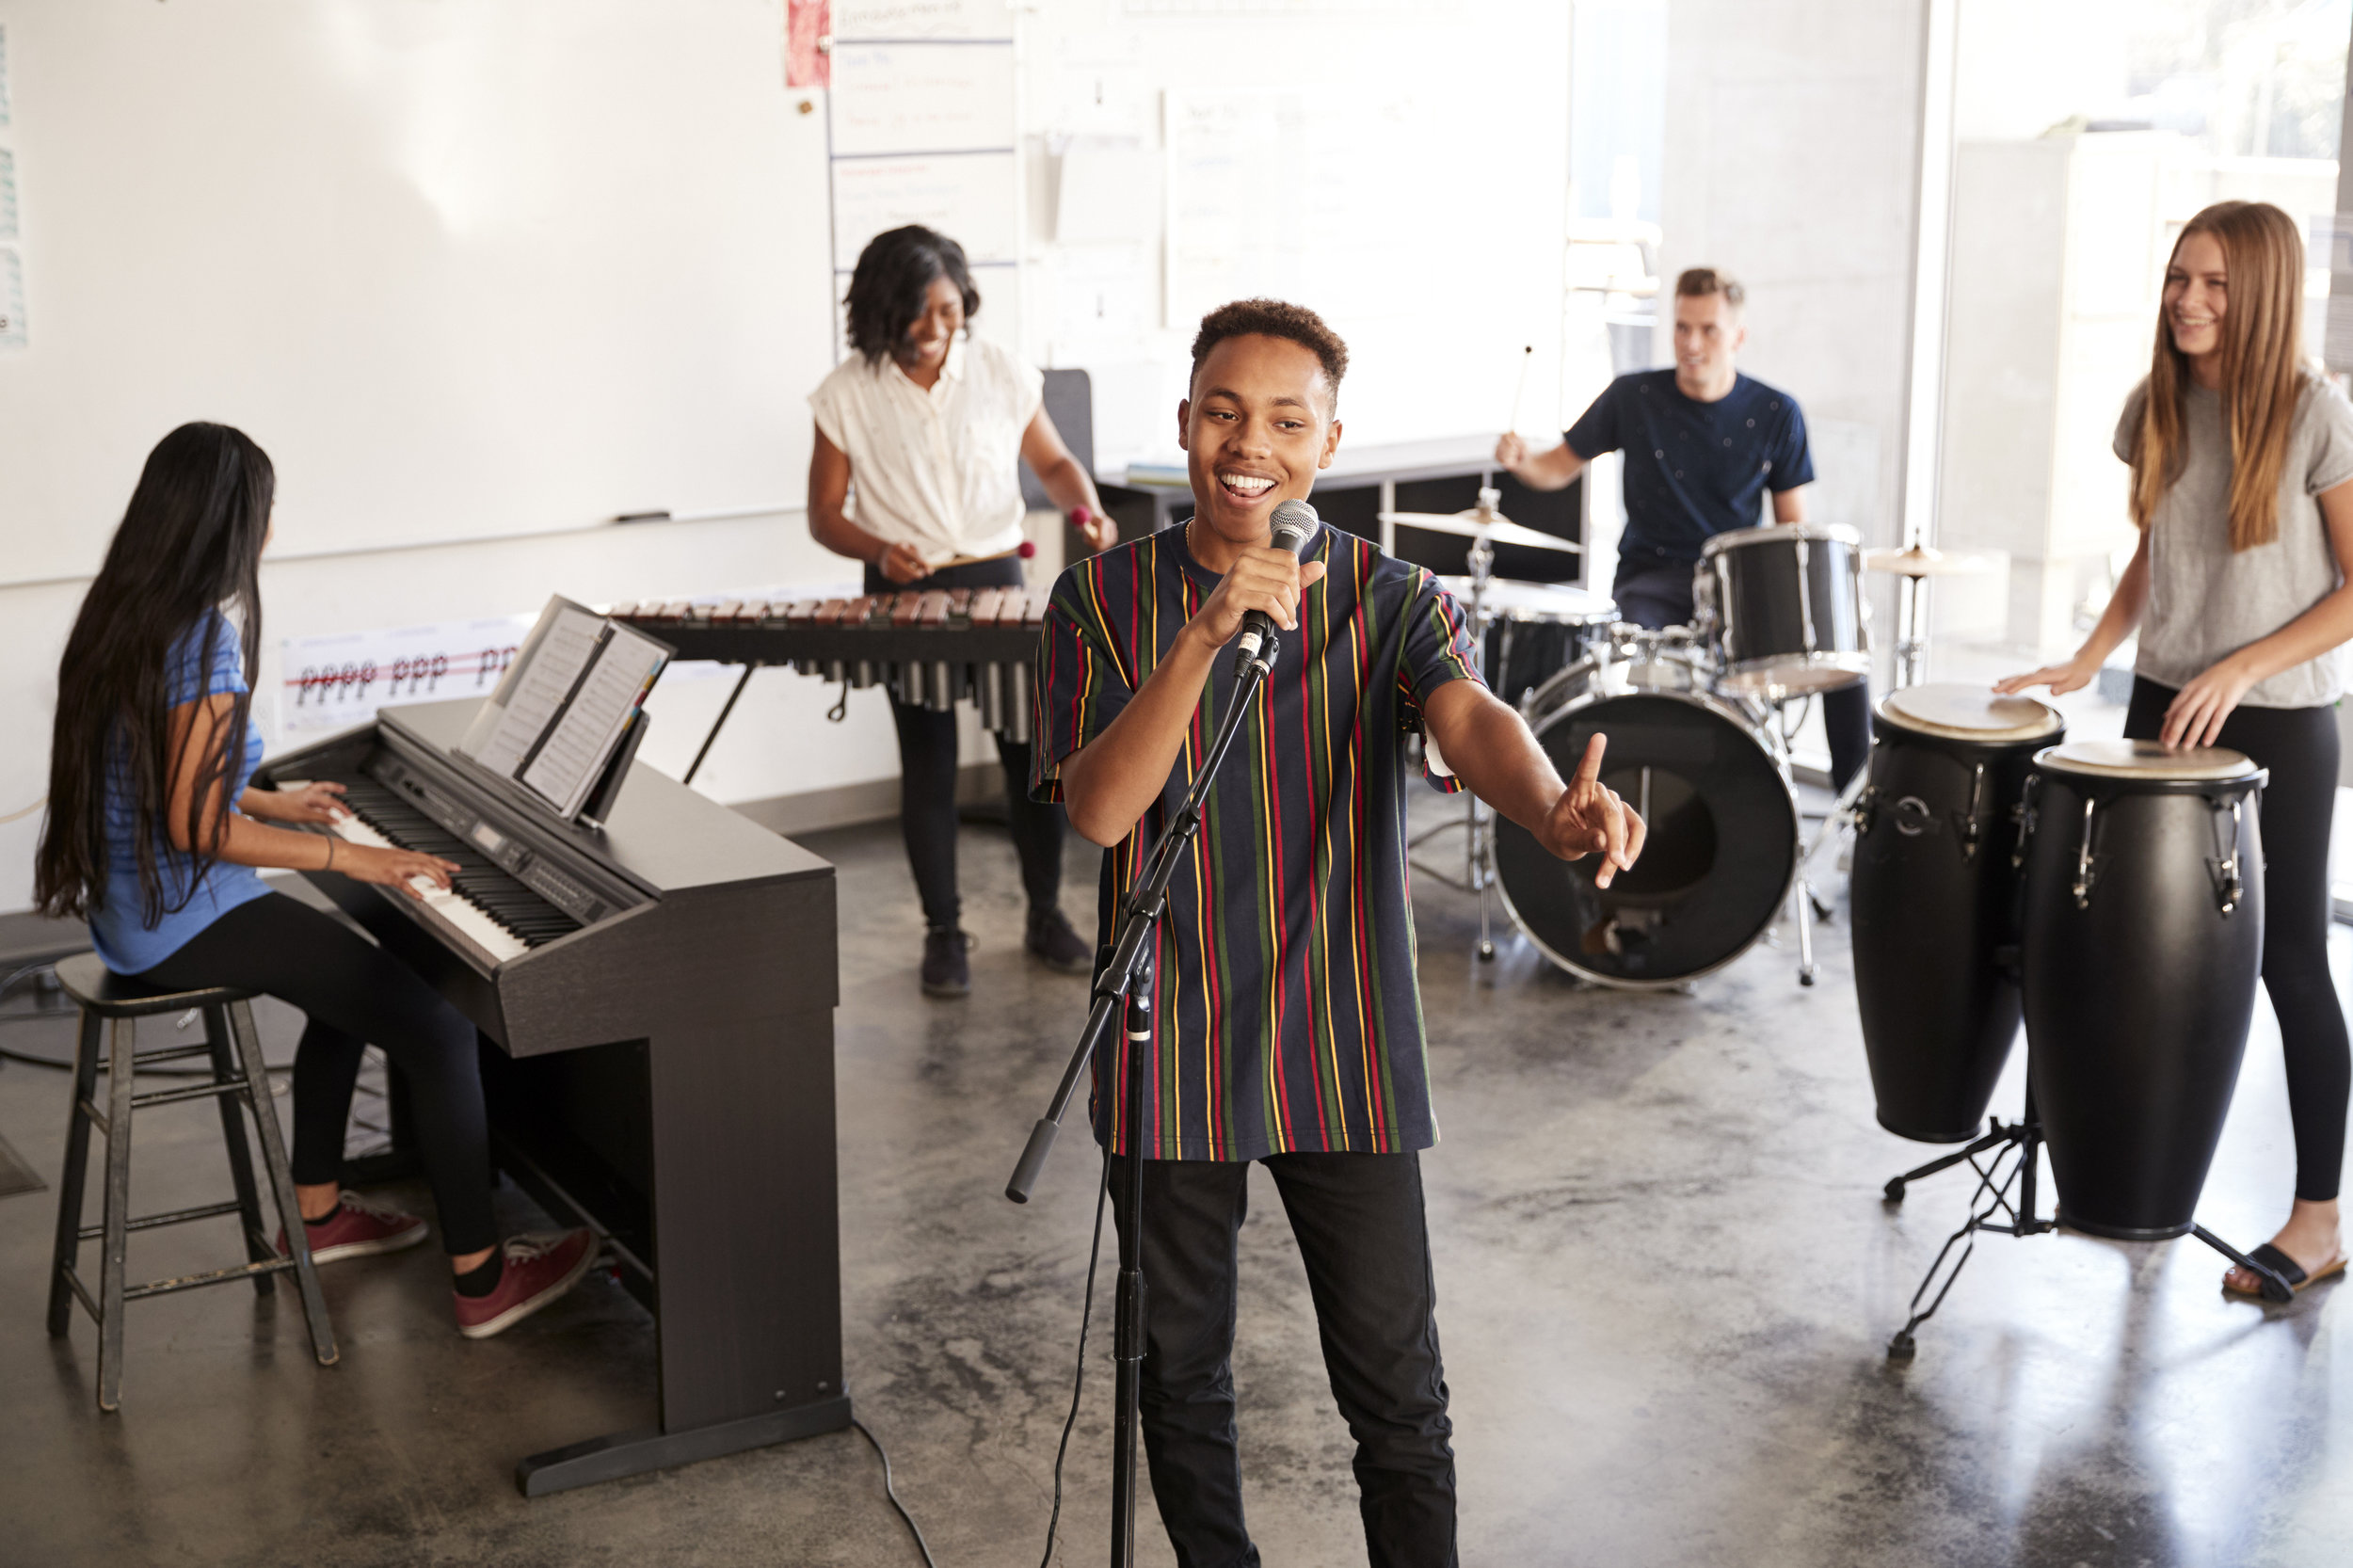 Why your church should include children in the music team - Why serving through music has the power to move young people from consumers to active servants in your church